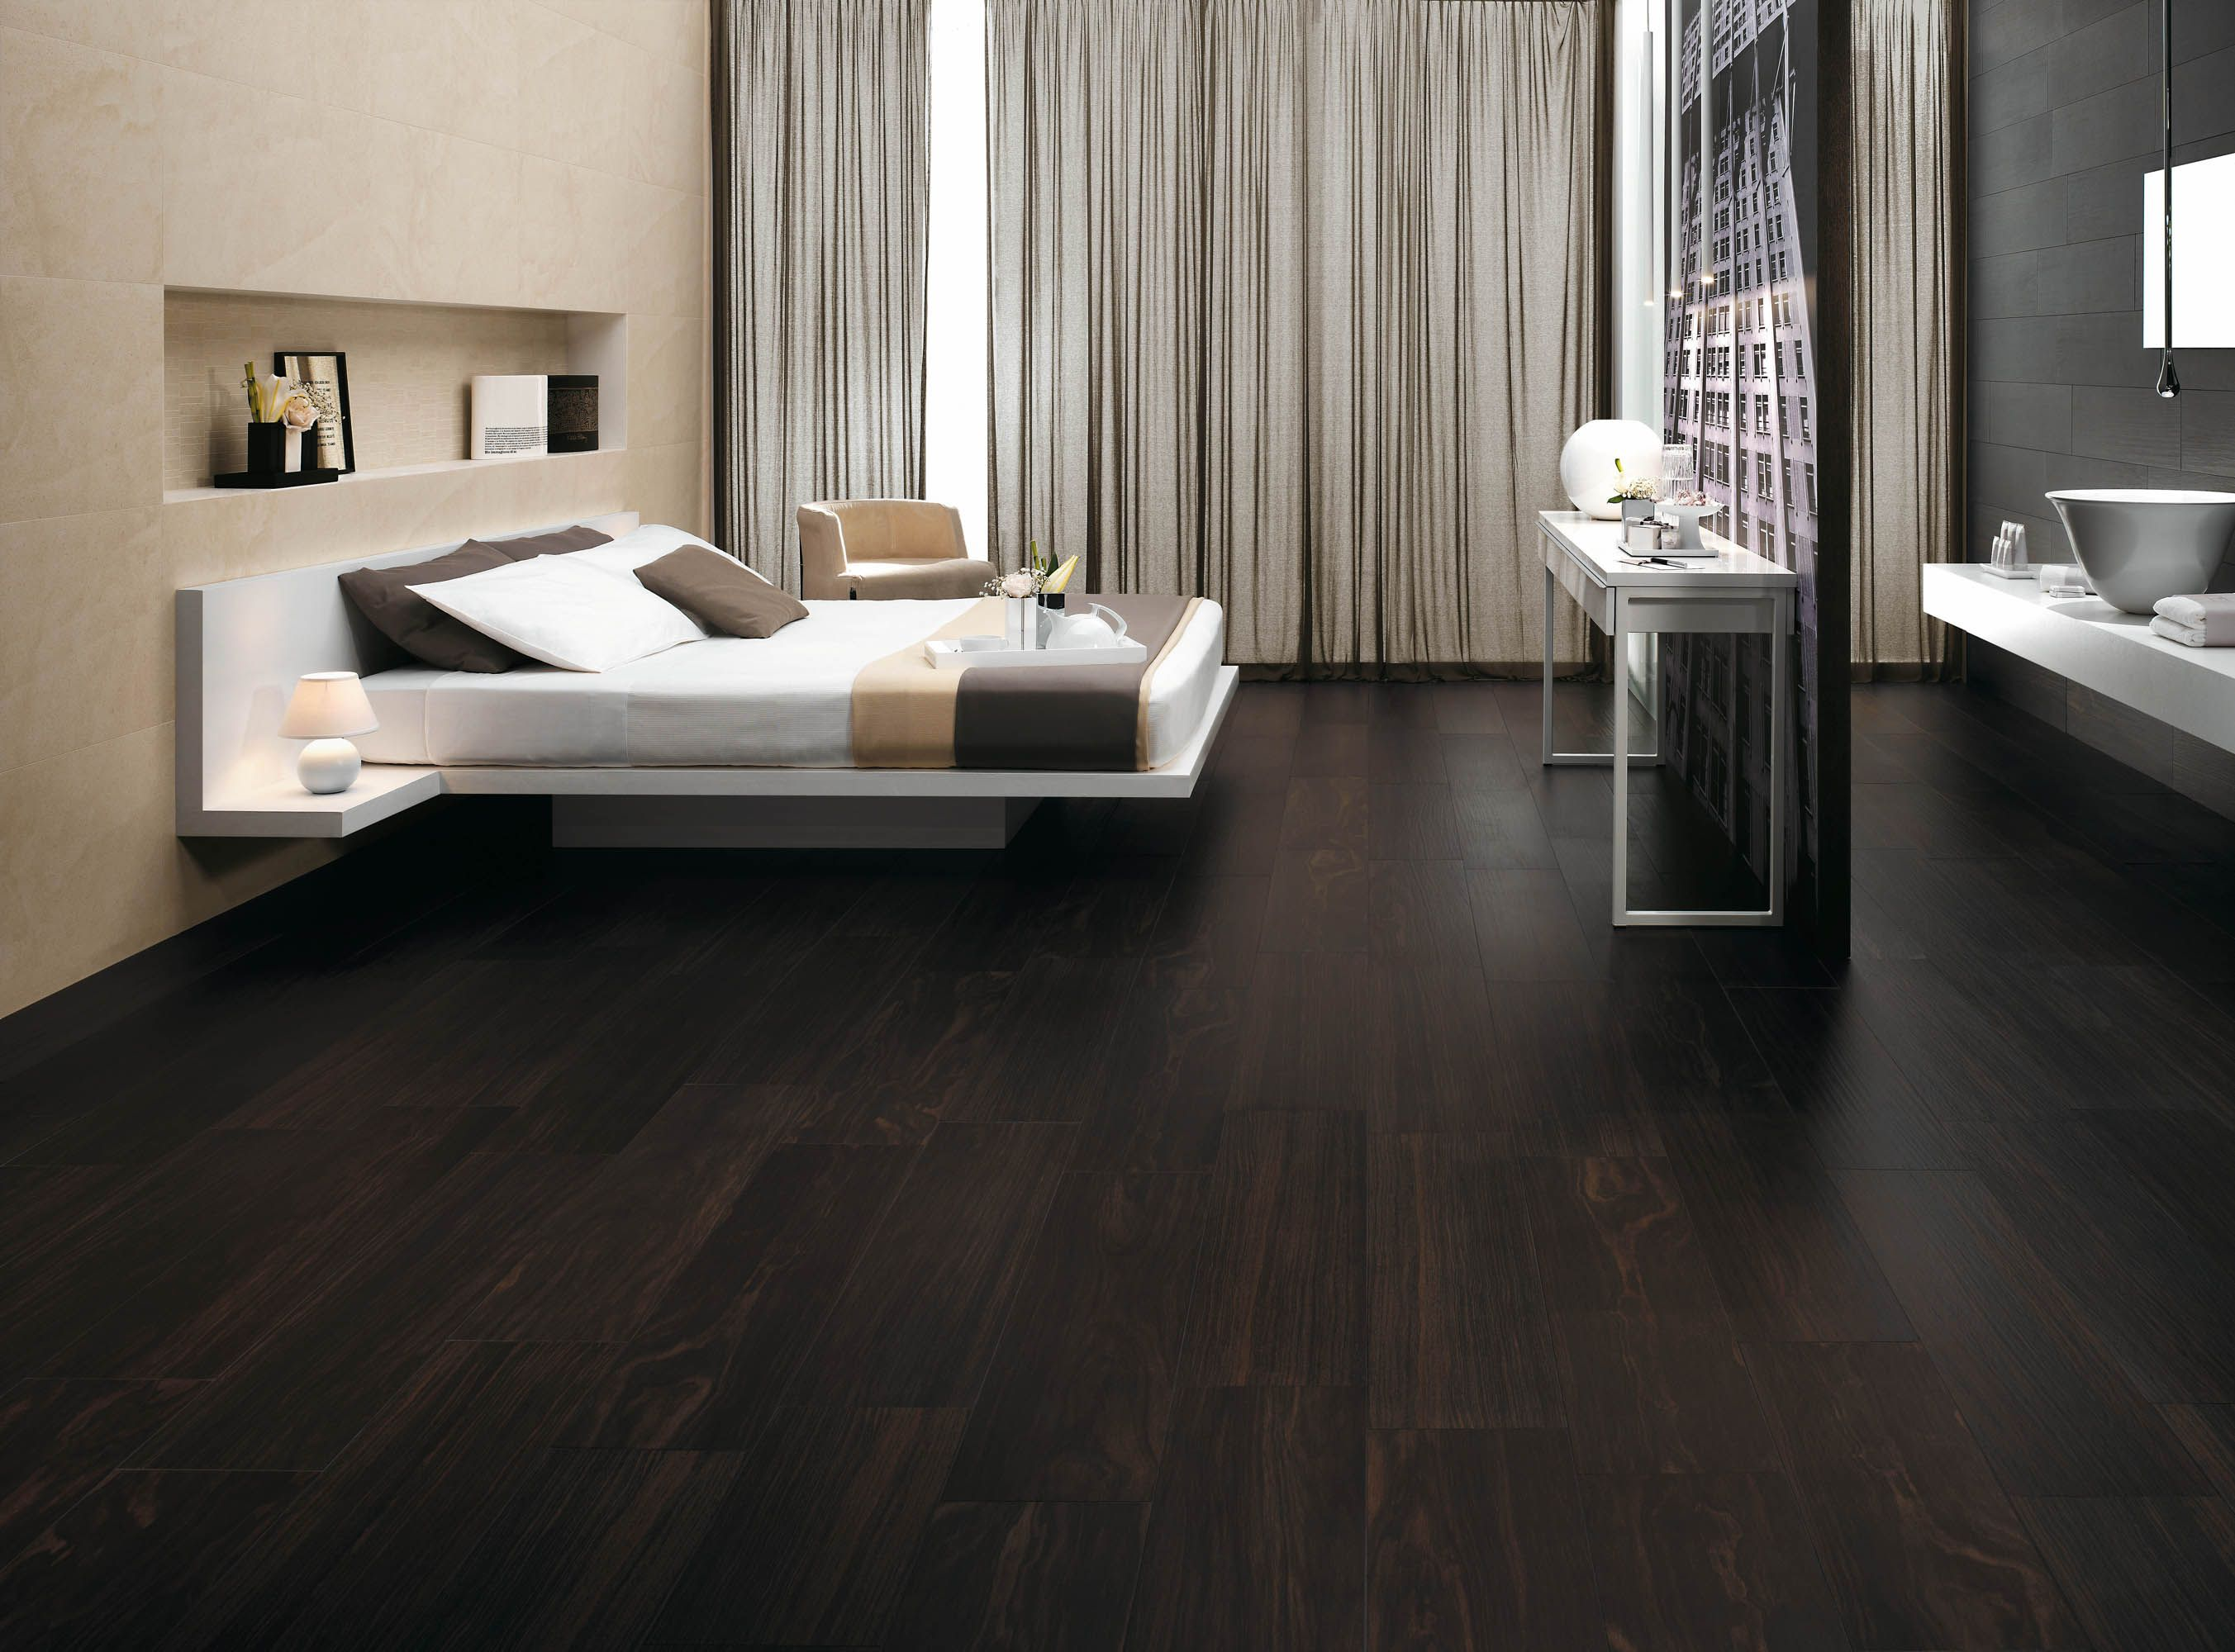 minoli tiles etic a wood look floor with all the benefits of porcelain etic ebano by. Black Bedroom Furniture Sets. Home Design Ideas